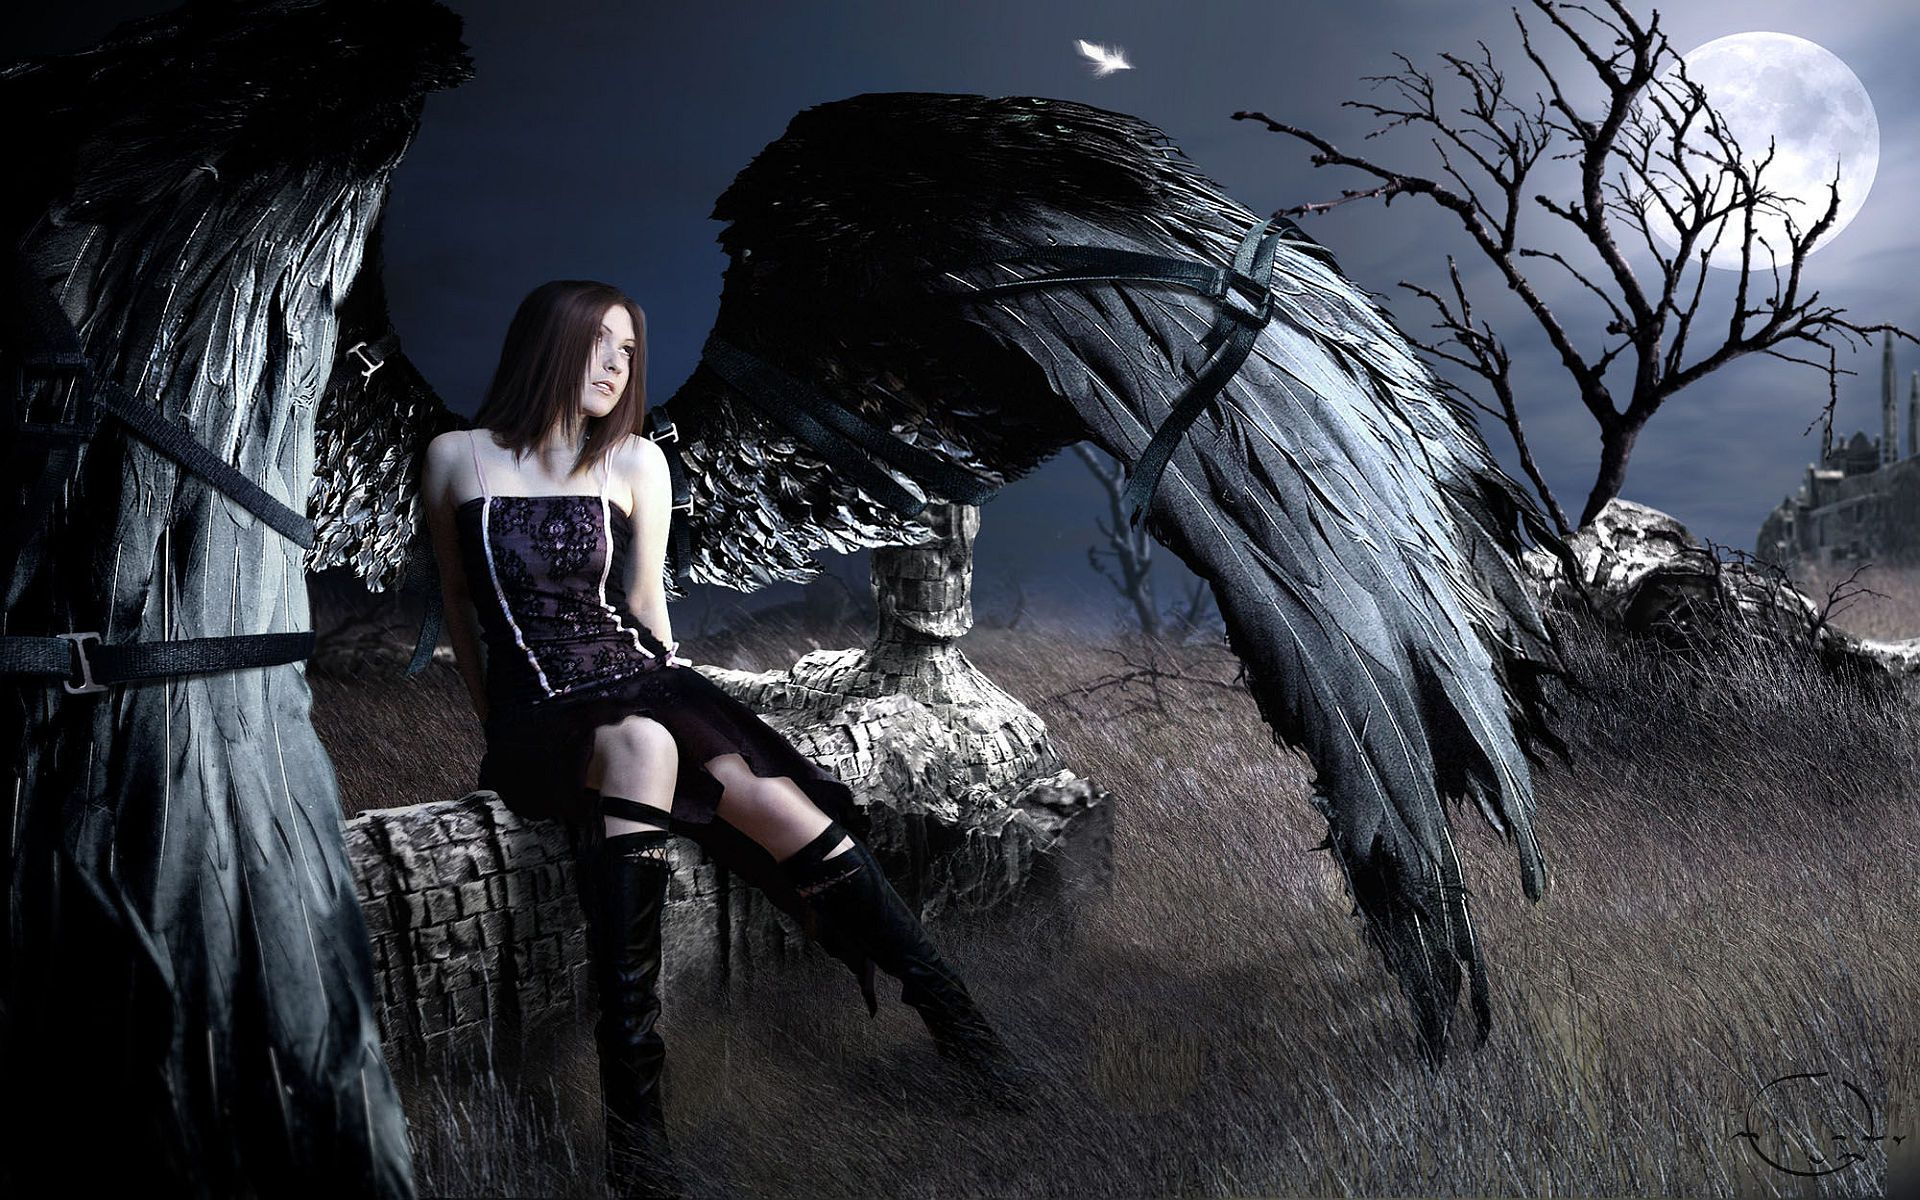 beautiful dark gothic angel wings wallpaper for mobile